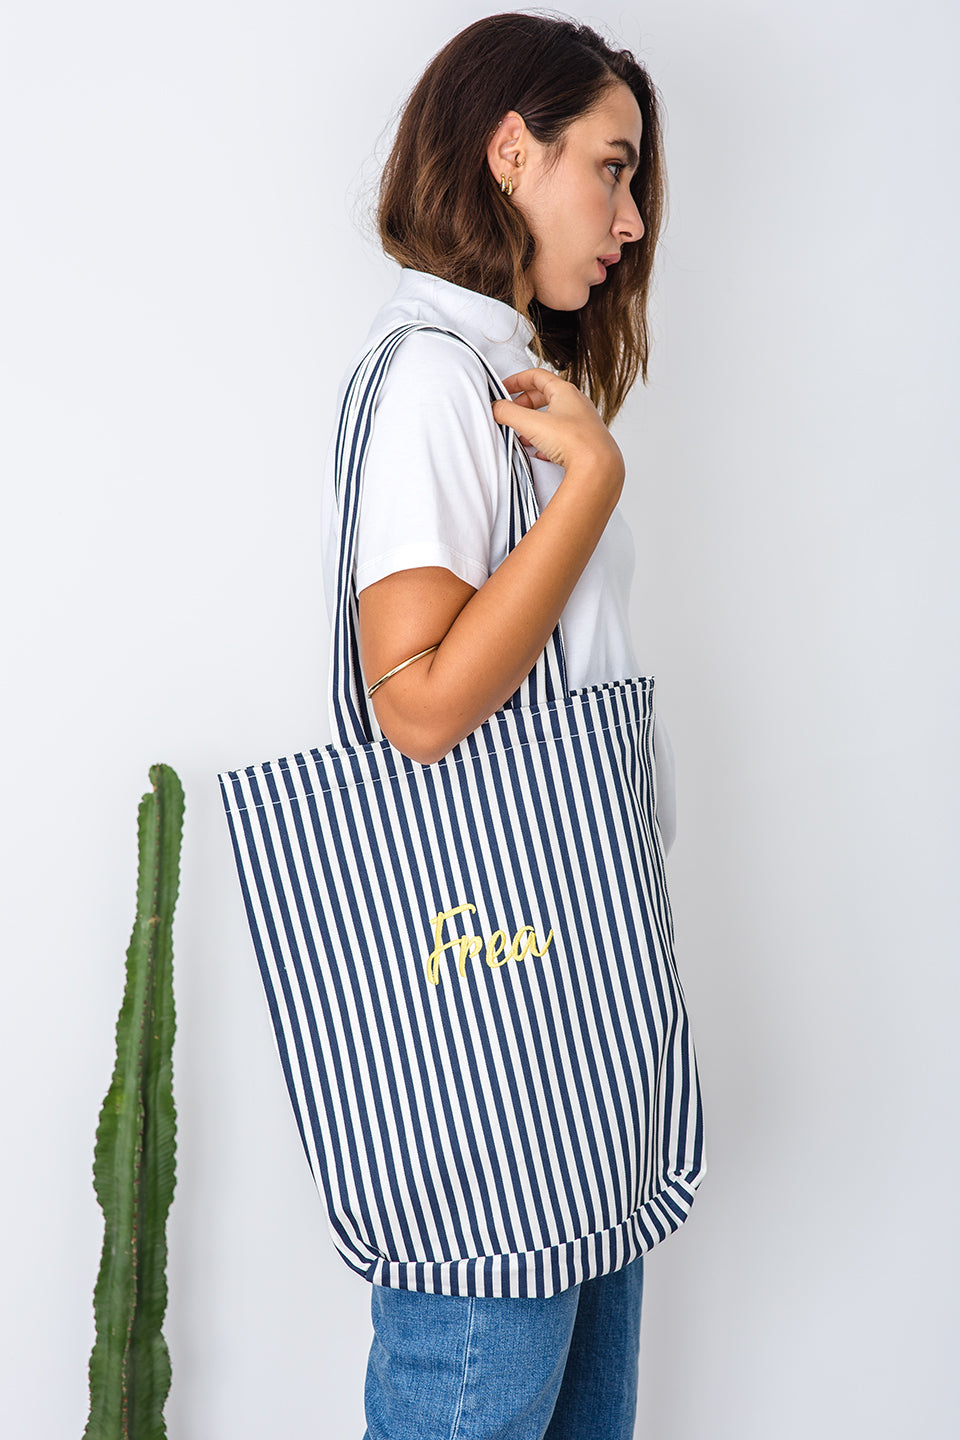 Frea Canvas Bag